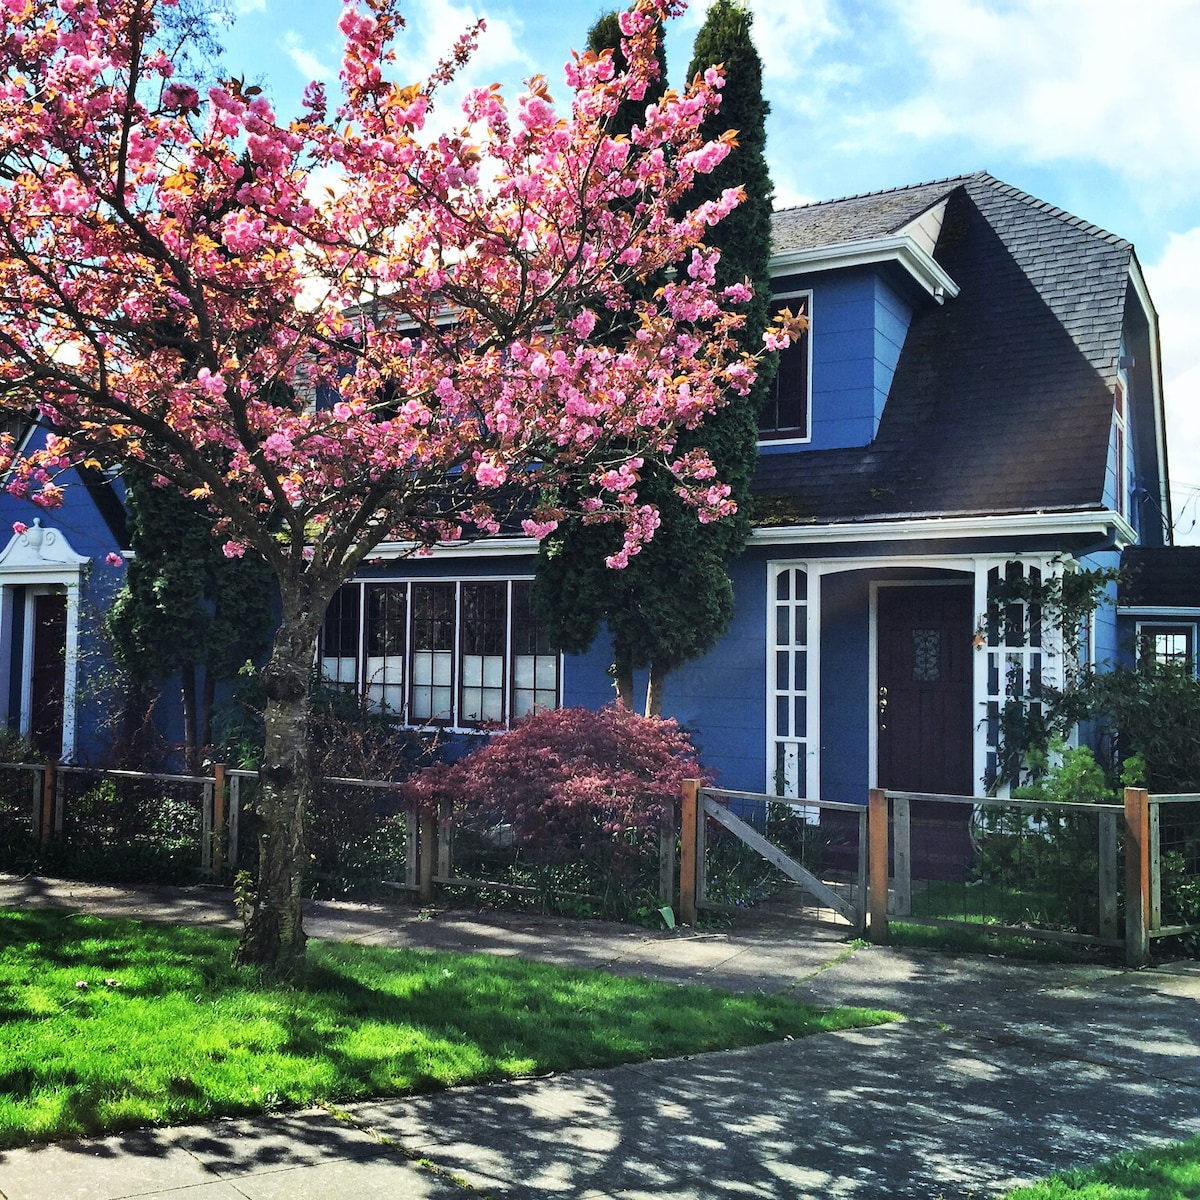 Our 1924 Craftsman home with modern updates sits on a spacious corner lot with ample free street parking in front.